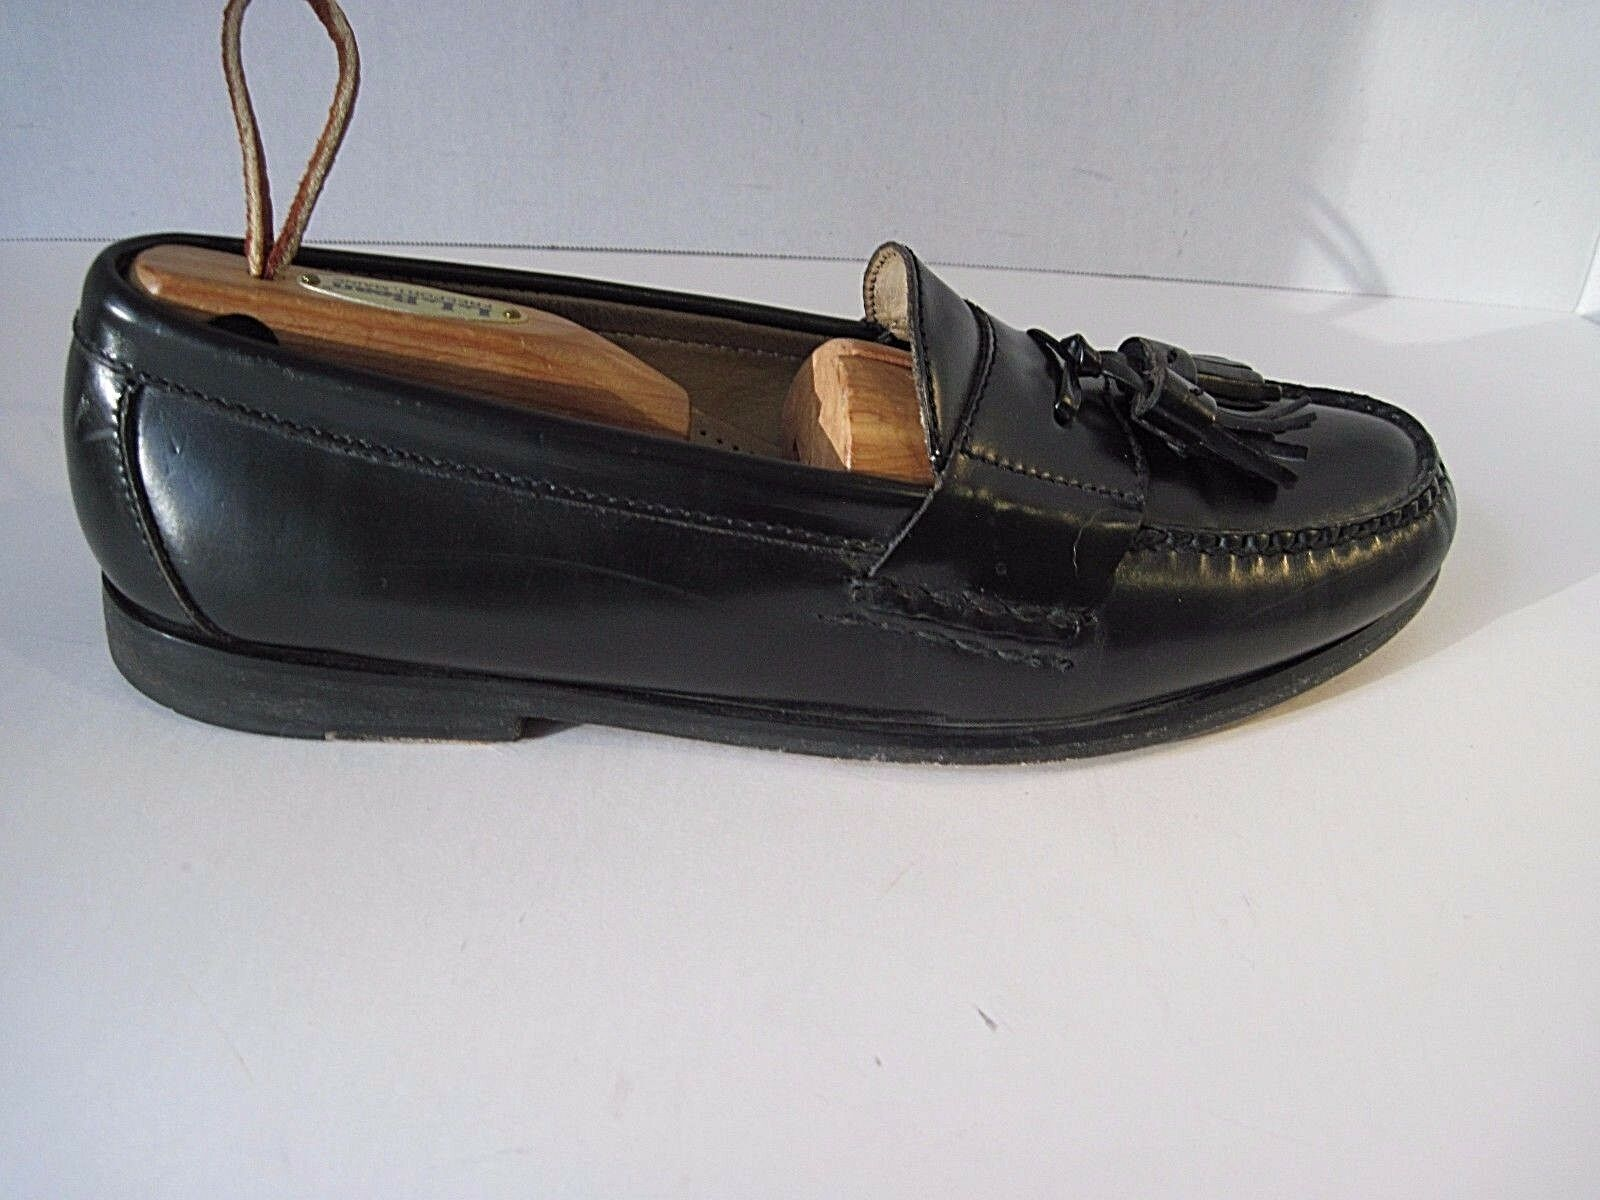 Cole Haan City Men's Black Leather Loafers Tassels Nice Size 9D